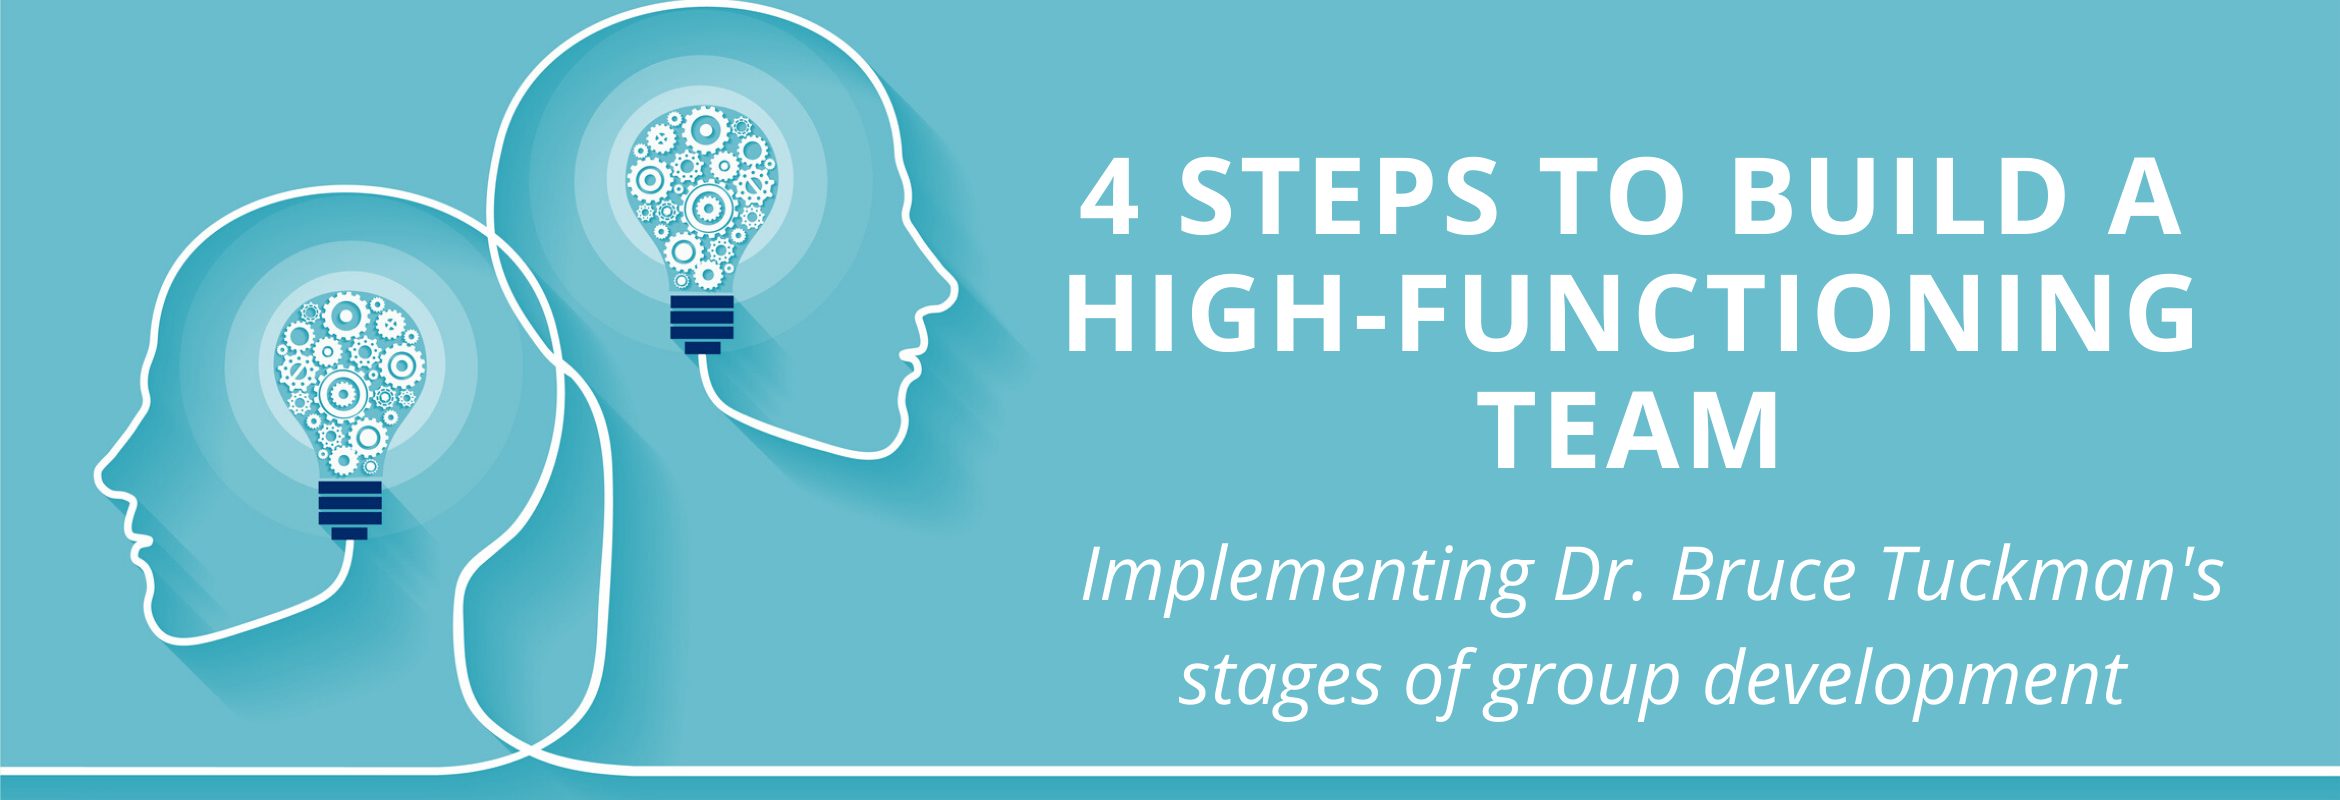 Implementing Dr. Bruce's Tuckman's four stages of group development